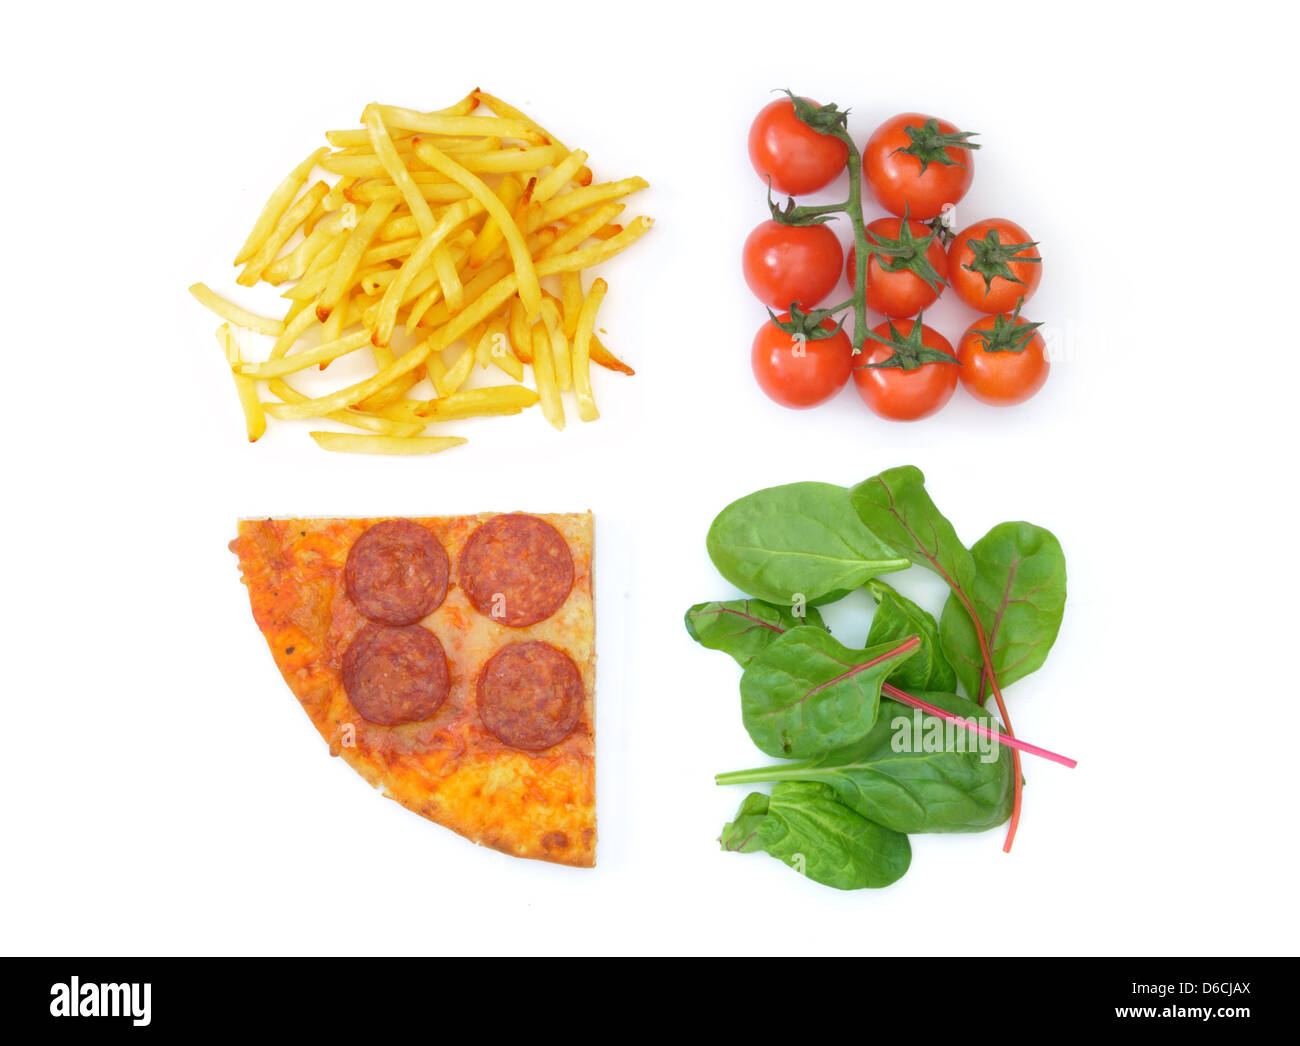 Good bad food choices - Stock Image